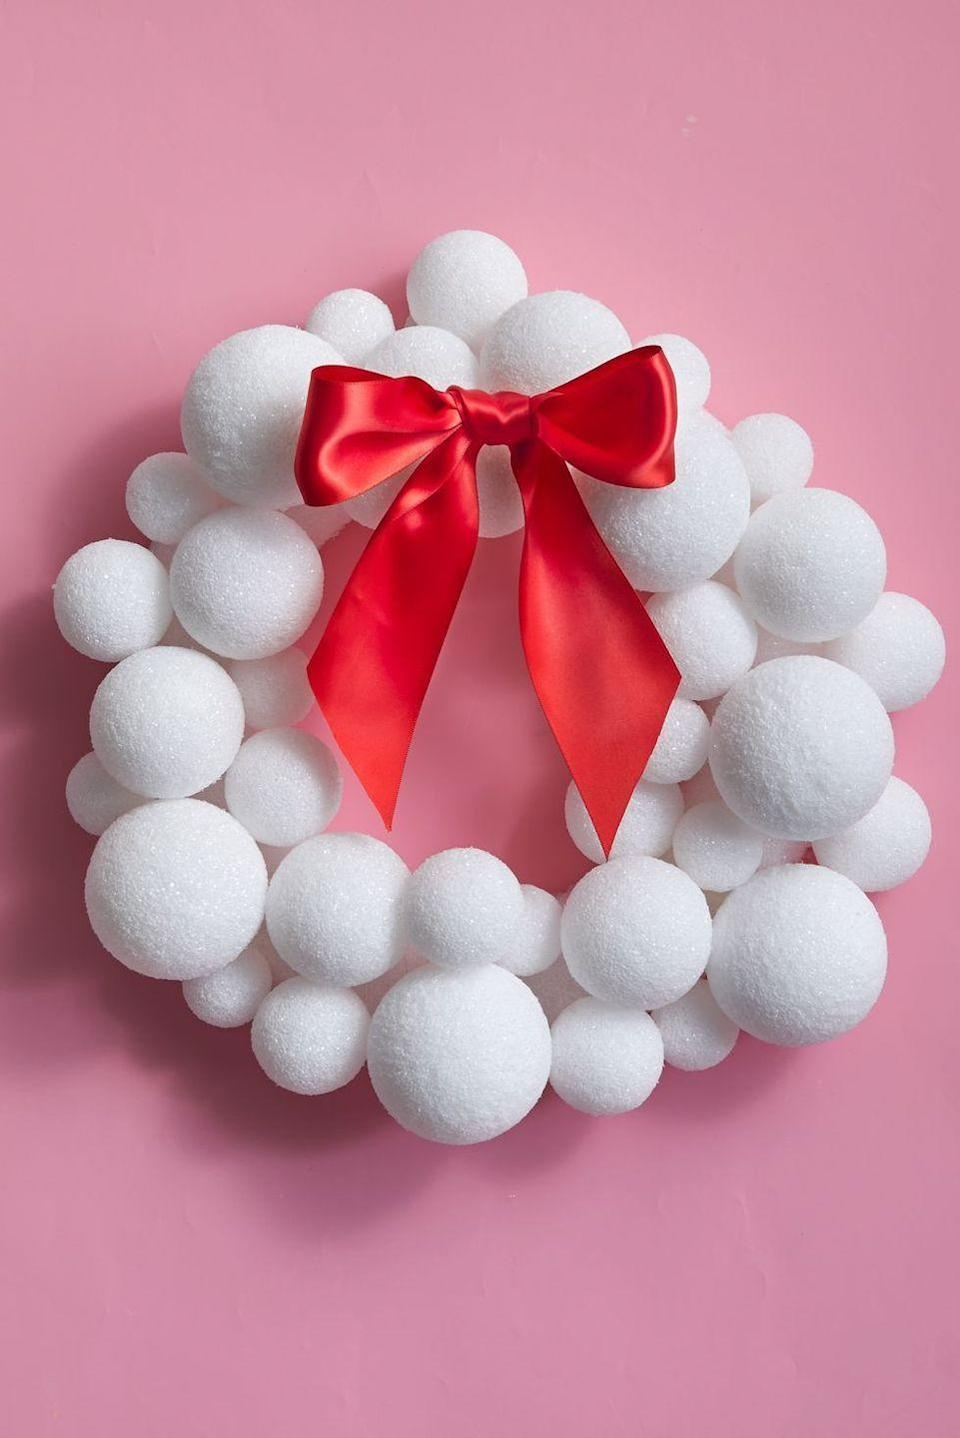 "<p>We bet you've never seen styrofoam balls look this good! To make this crafty-looking wreath, apply styrofoam balls to wreath form with hot glue. Once they're all dry, finish it with a bow and wire for hanging.</p><p><a class=""link rapid-noclick-resp"" href=""https://go.redirectingat.com?id=74968X1596630&url=https%3A%2F%2Fwww.etsy.com%2Flisting%2F771711783%2F2-12-styrofoam-balls-12-or-24-pcs-free%3Fgpla%3D1%26gao%3D1%26gclid%3DCjwKCAjwps75BRAcEiwAEiACMd-2vI2OvEKMOu_cloCIL4anPYU5isZSyjjrJCgn0RAeXZHhsqe0zhoCbh8QAvD_BwE&sref=https%3A%2F%2Fwww.goodhousekeeping.com%2Fholidays%2Fchristmas-ideas%2Fg2361%2Fchristmas-door-decorating-ideas%2F"" rel=""nofollow noopener"" target=""_blank"" data-ylk=""slk:SHOP STYROFOAM BALLS"">SHOP STYROFOAM BALLS</a></p>"